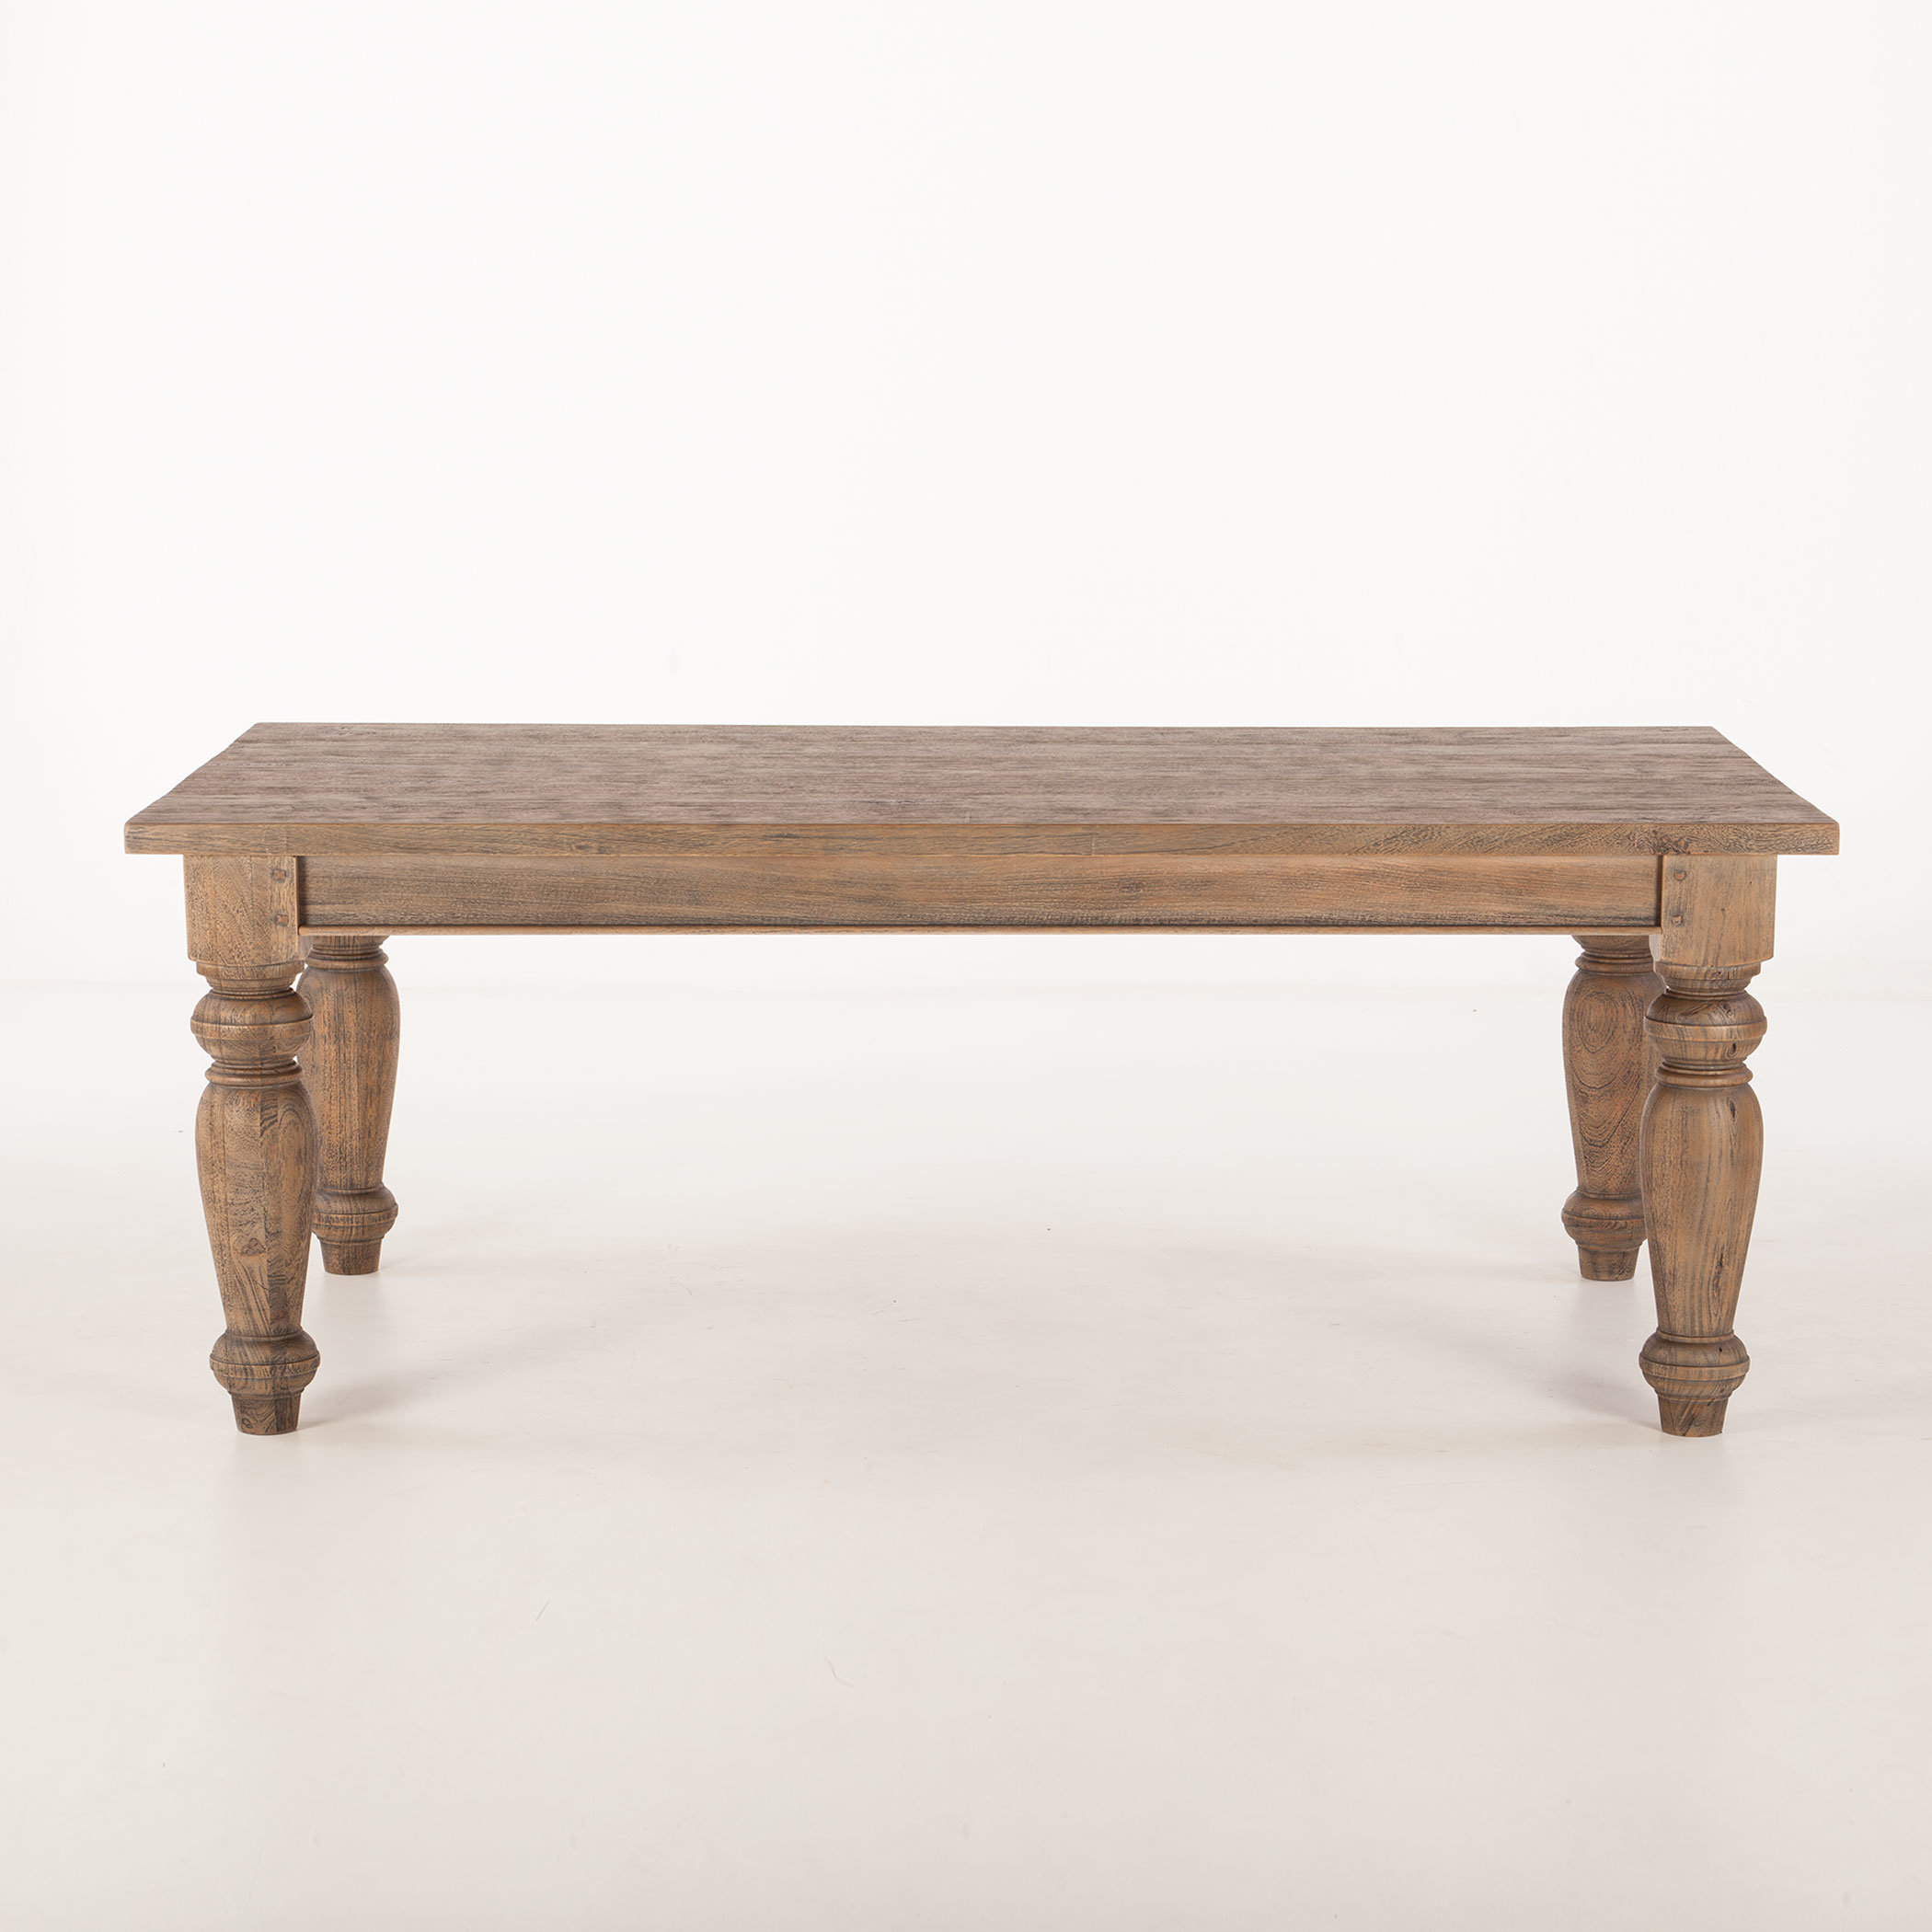 Most Recent Linette 5 Piece Dining Table Sets With Regard To Charlton Home Musson Solid Wood Dining Table (#10 of 20)